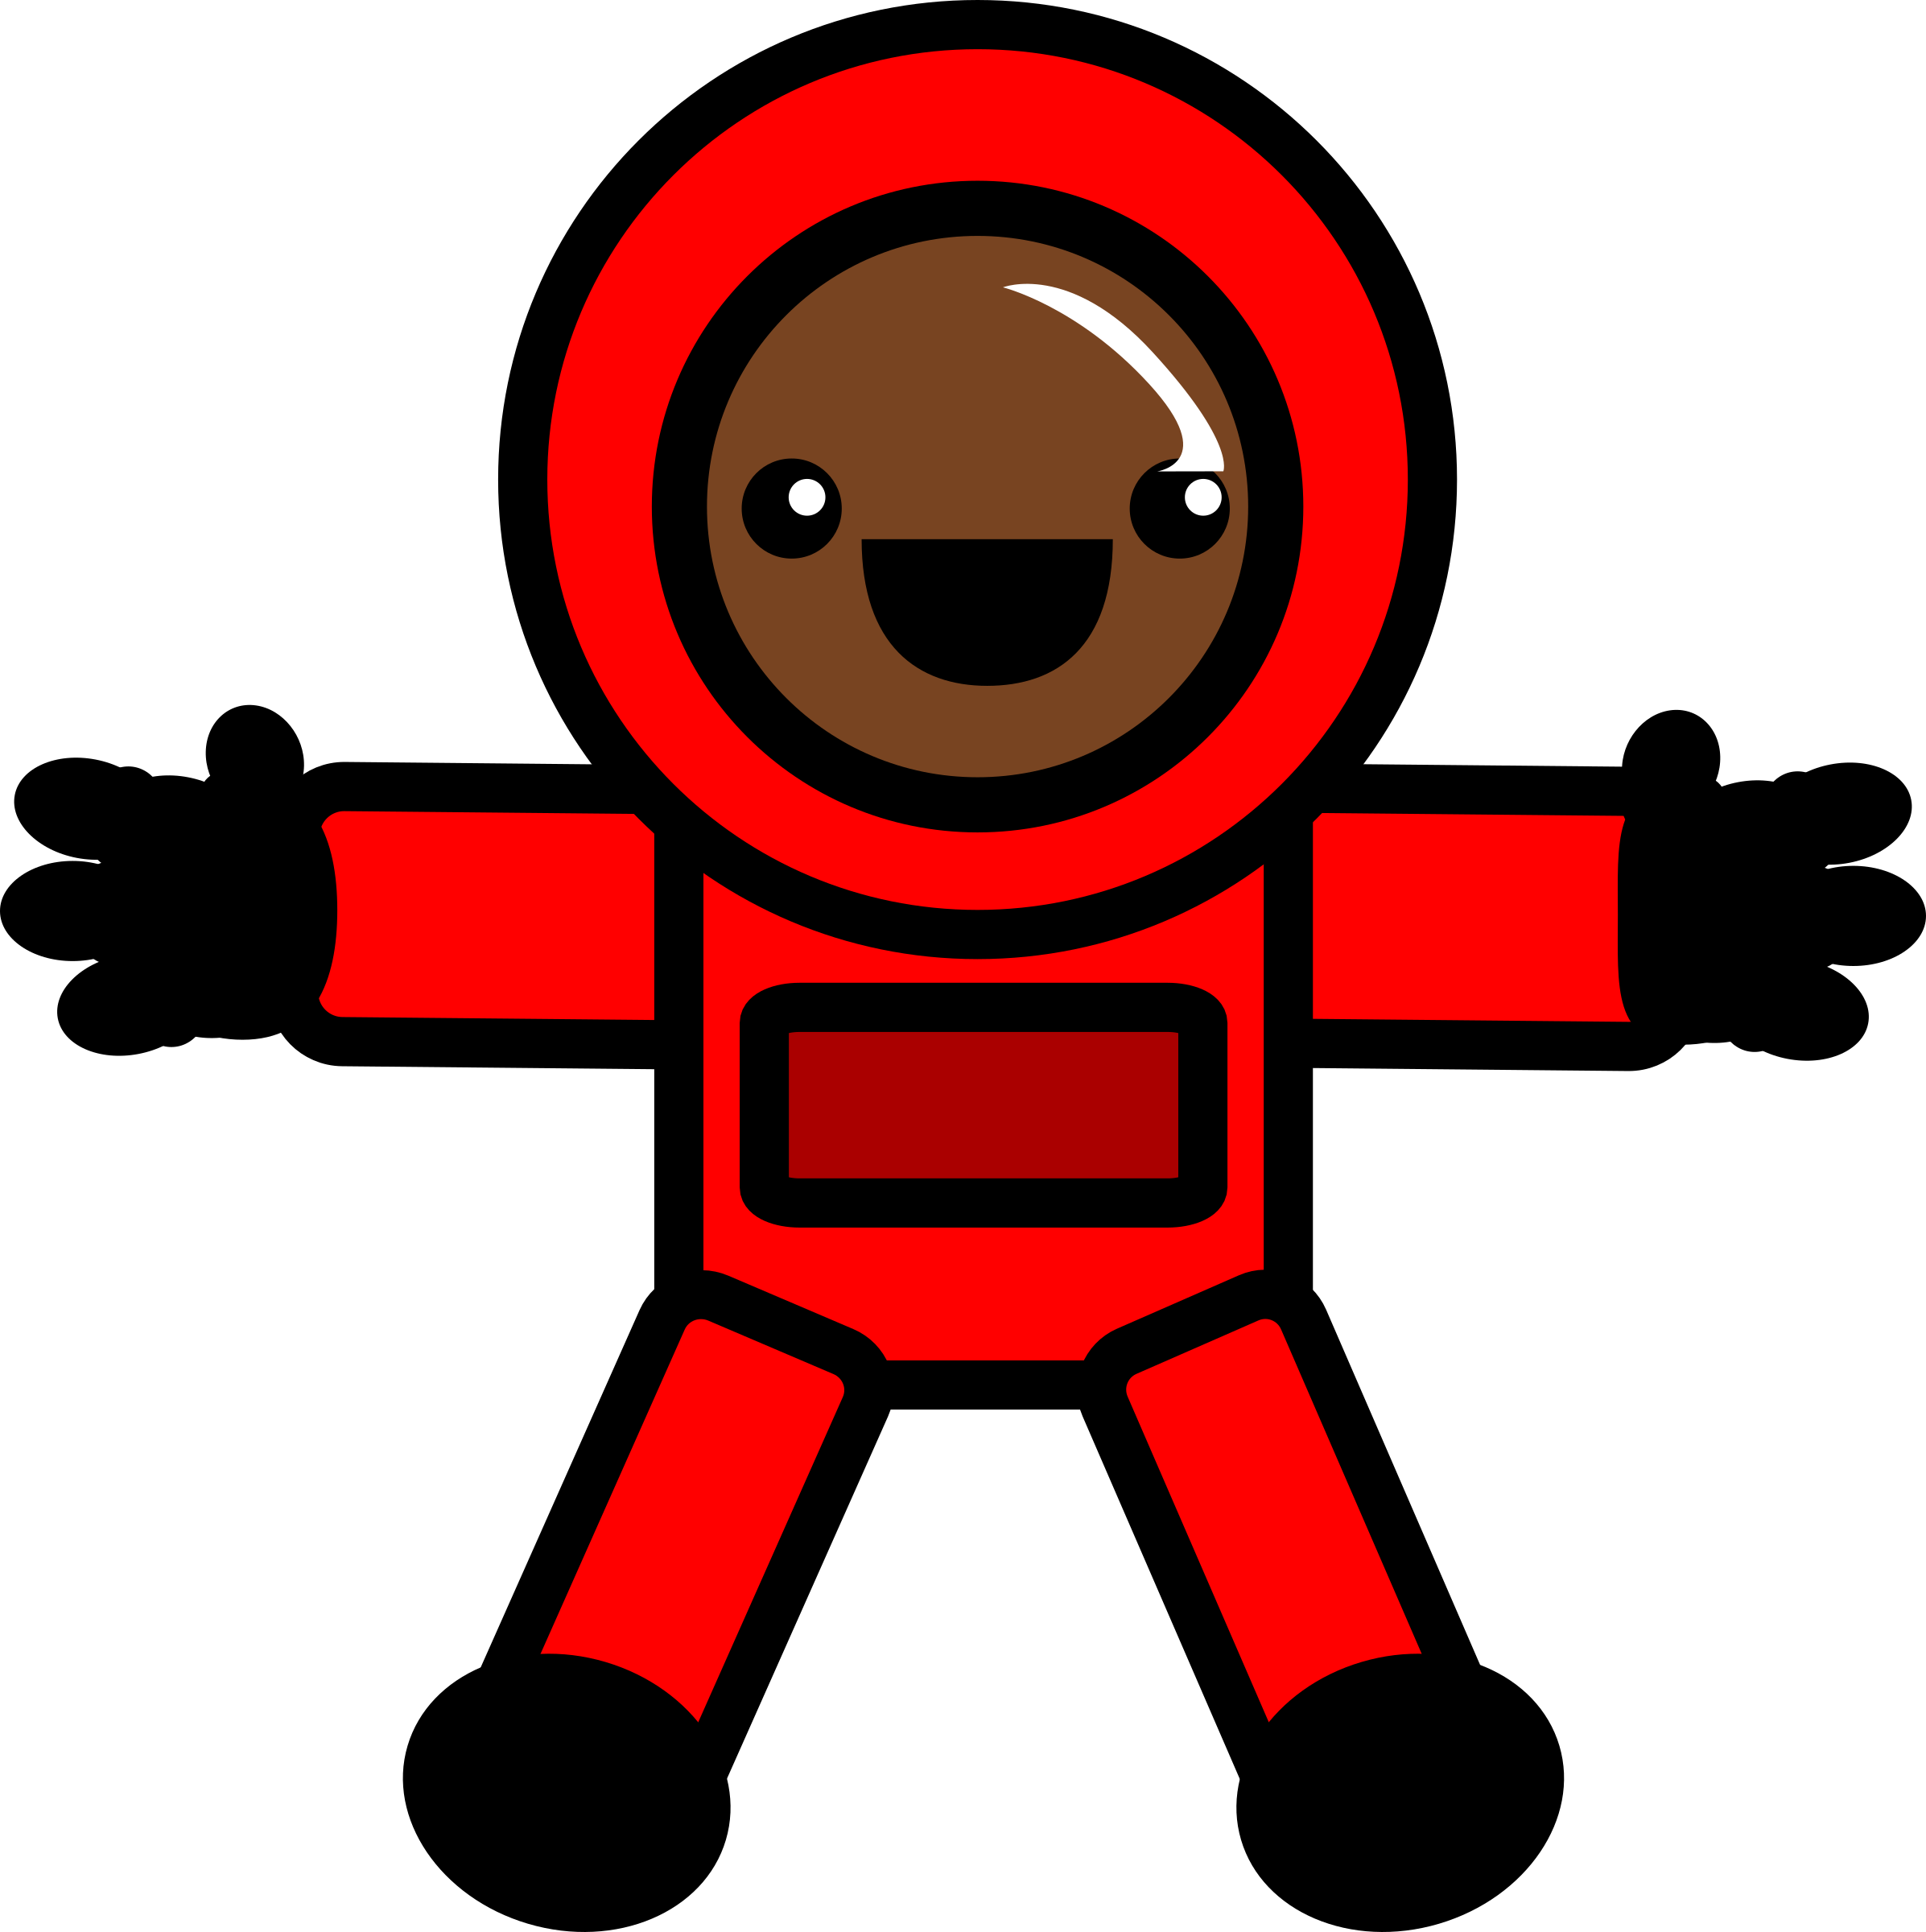 Galaxy clipart astronaut. Red space suit icons